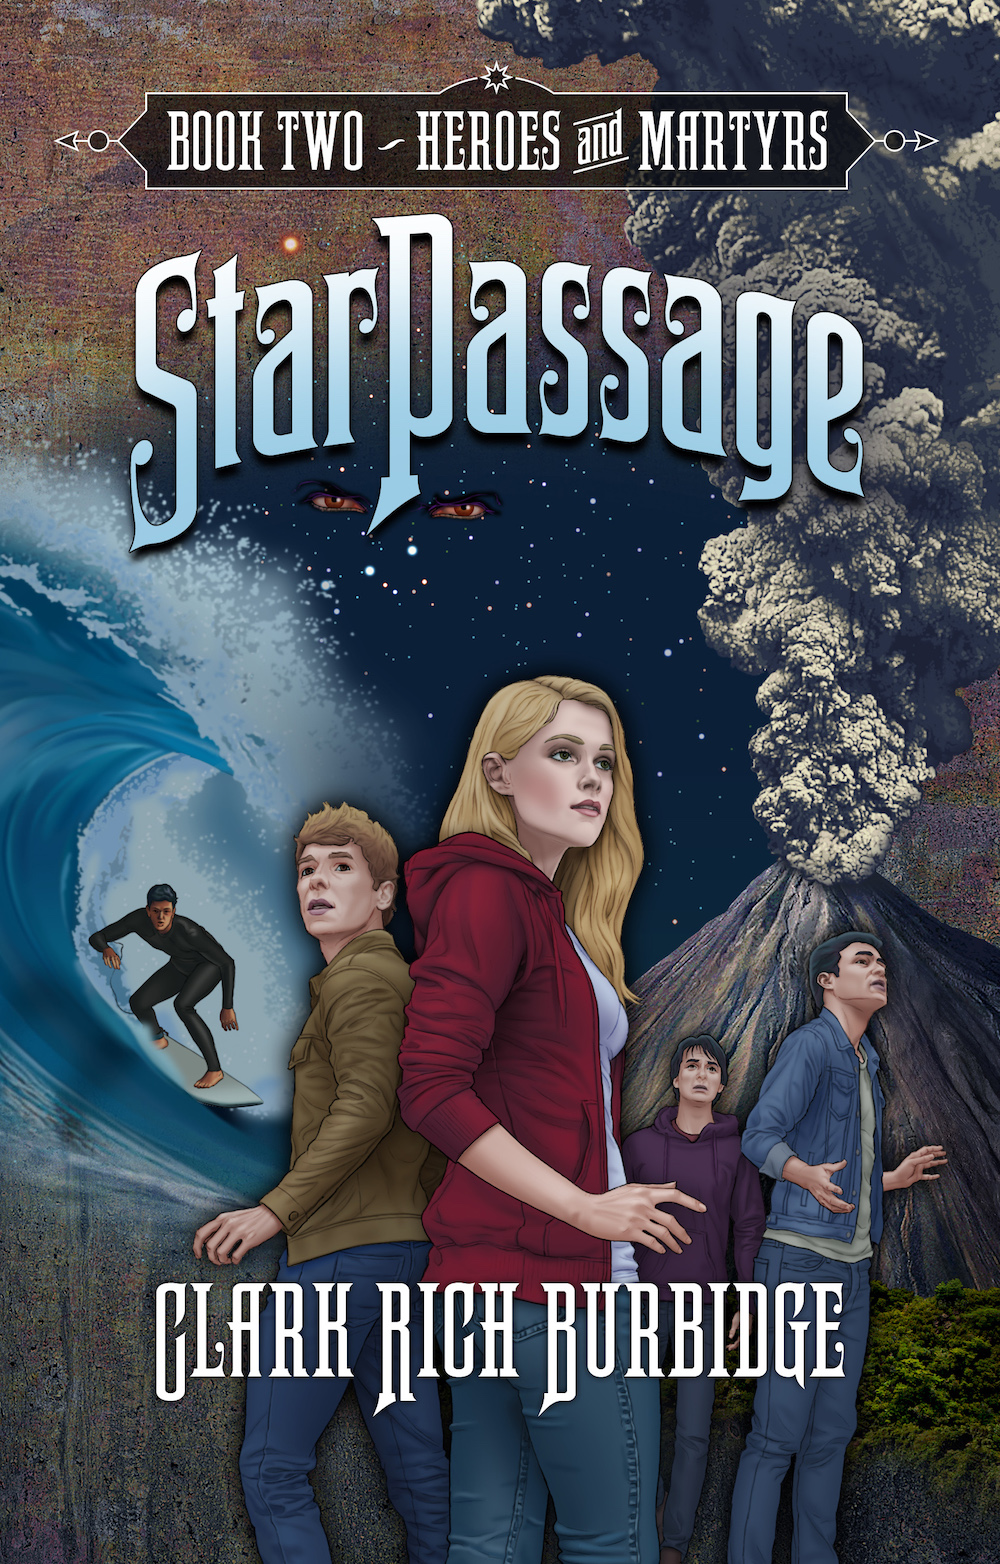 Image result for starpassage book 2